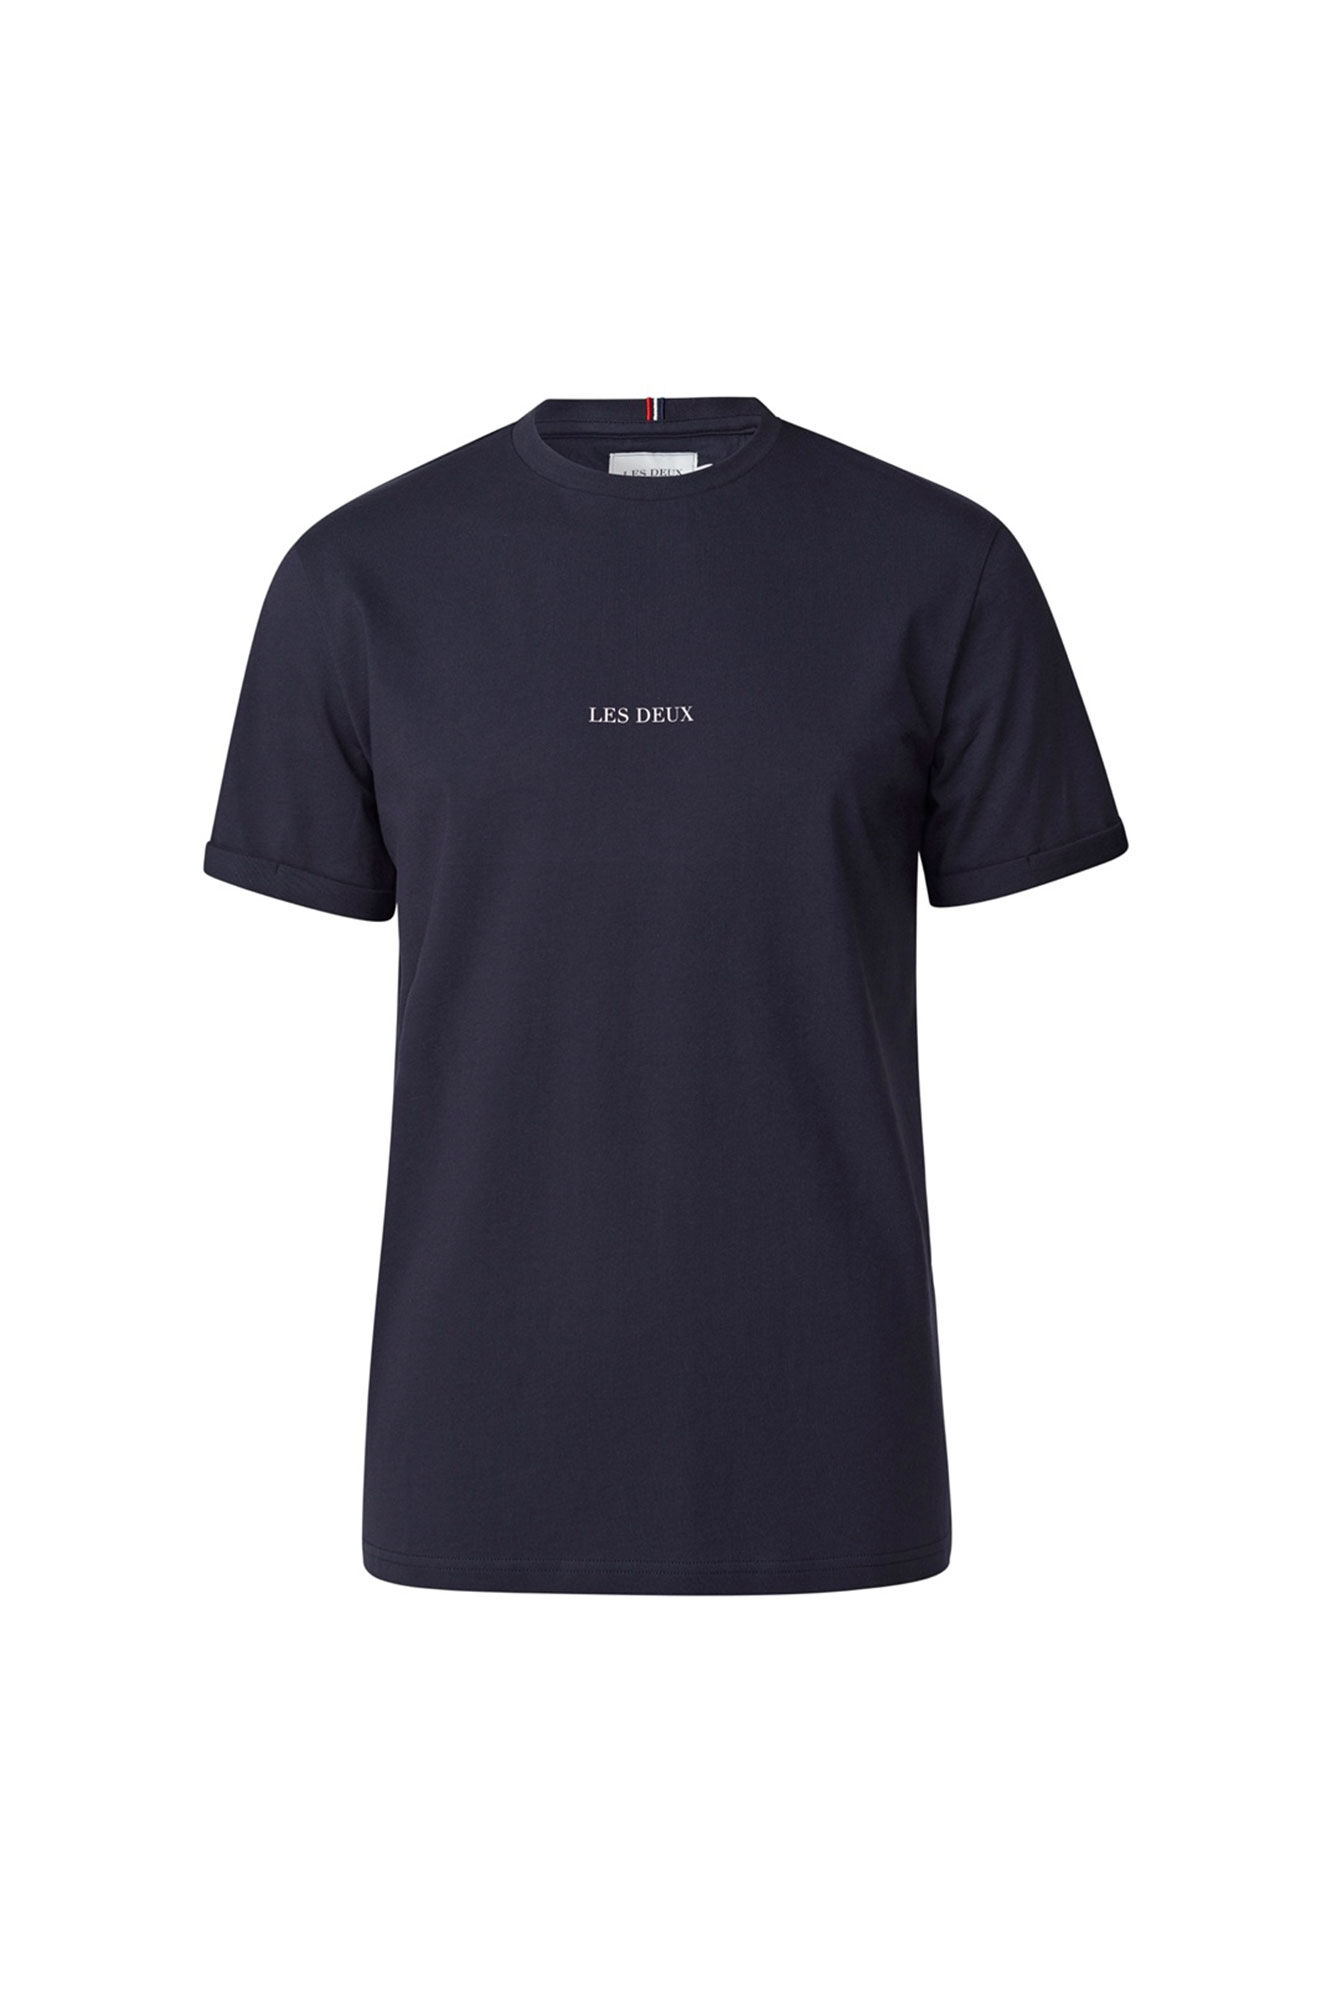 Lens t-shirt LDM101046, DARK NAVY